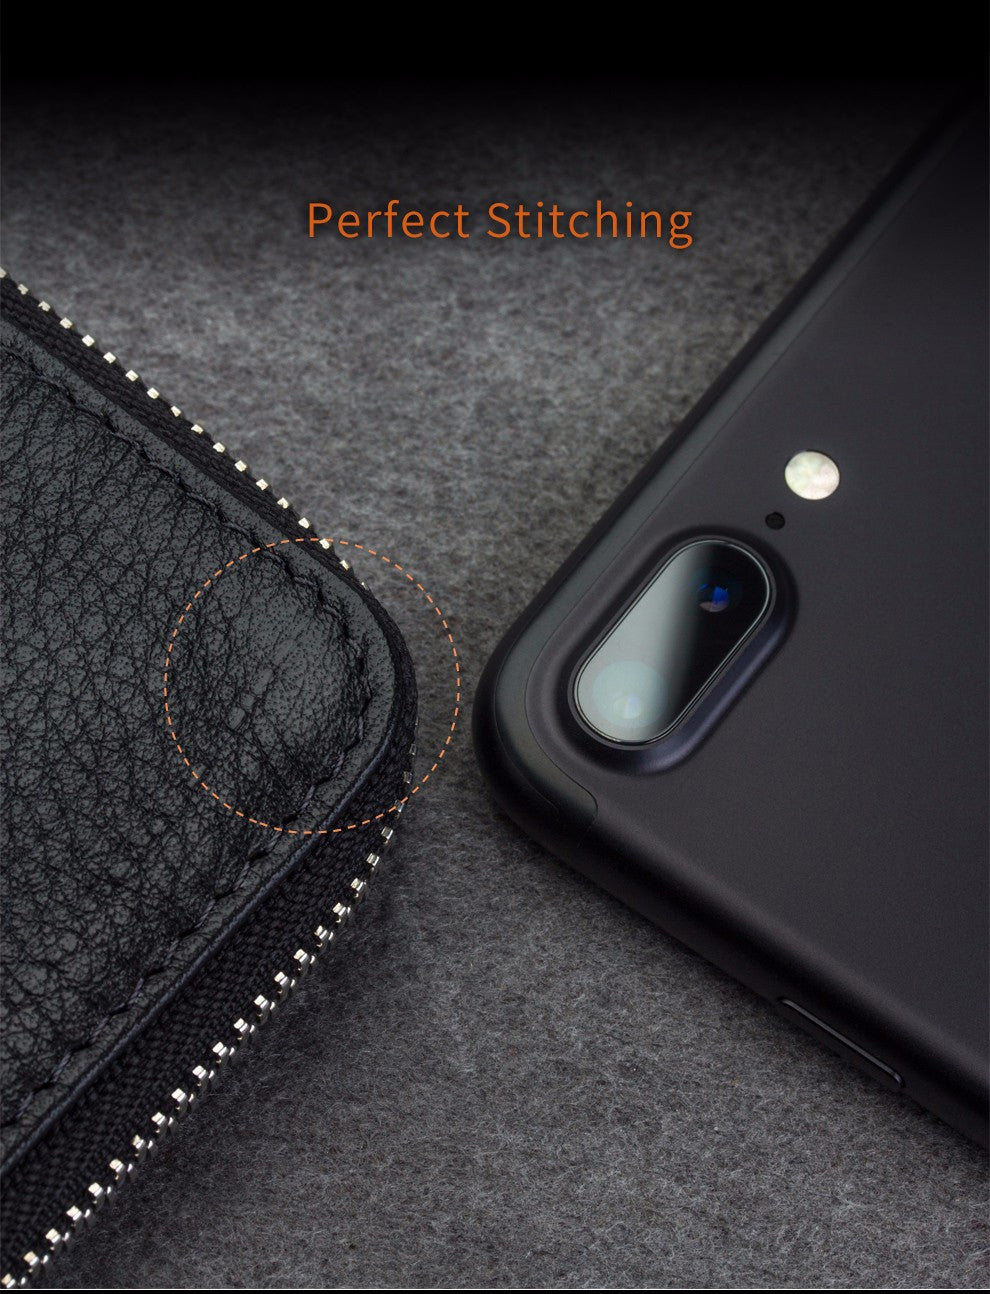 Real Leather Wallet Phone Pouch for iPhone 6 6s iPhone 7 & iPhone 7 Plus Handmade Genuine Leather Pouch Case With Built-in Credit Card Slots Universal Fit For 4.7/5.5 inch Phones